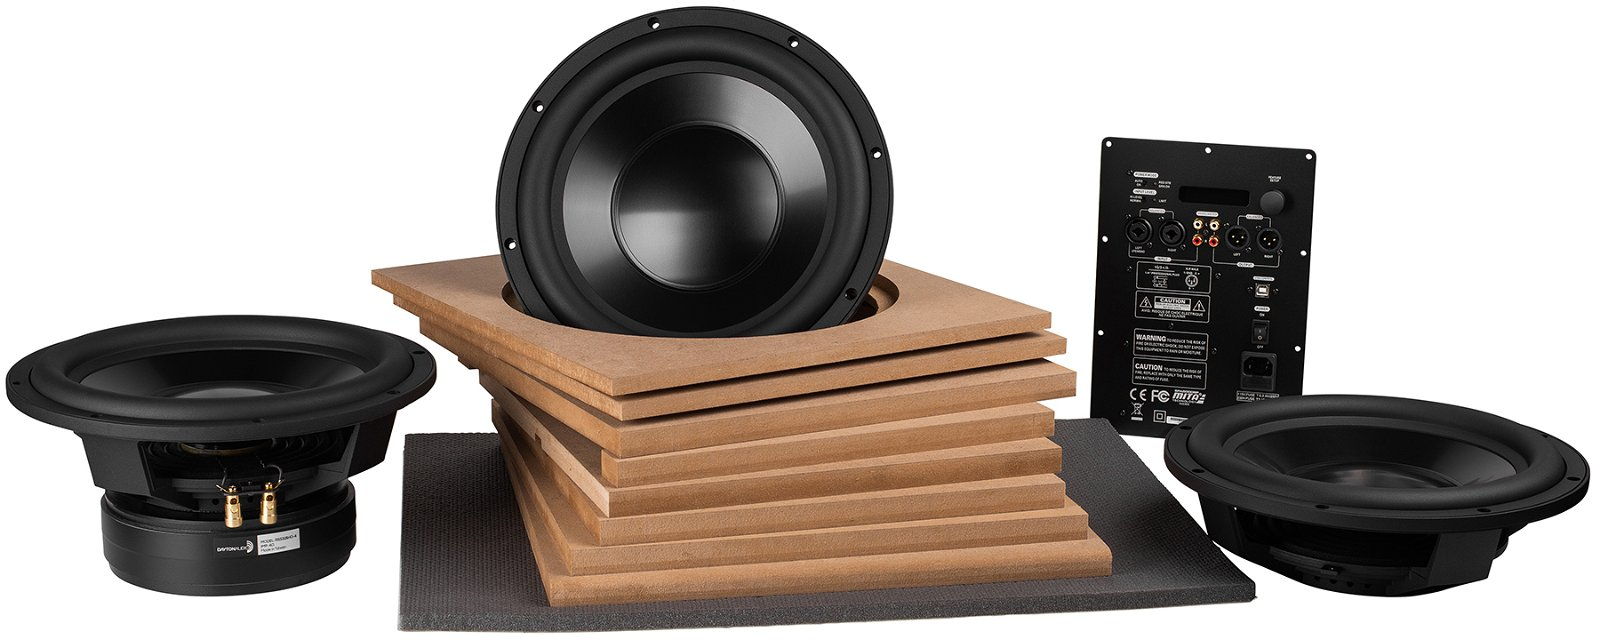 Powered DA Reference 12-in Subwoofer Kit with Dual Passive Radiators & 500 Watt DSP Plate Amp